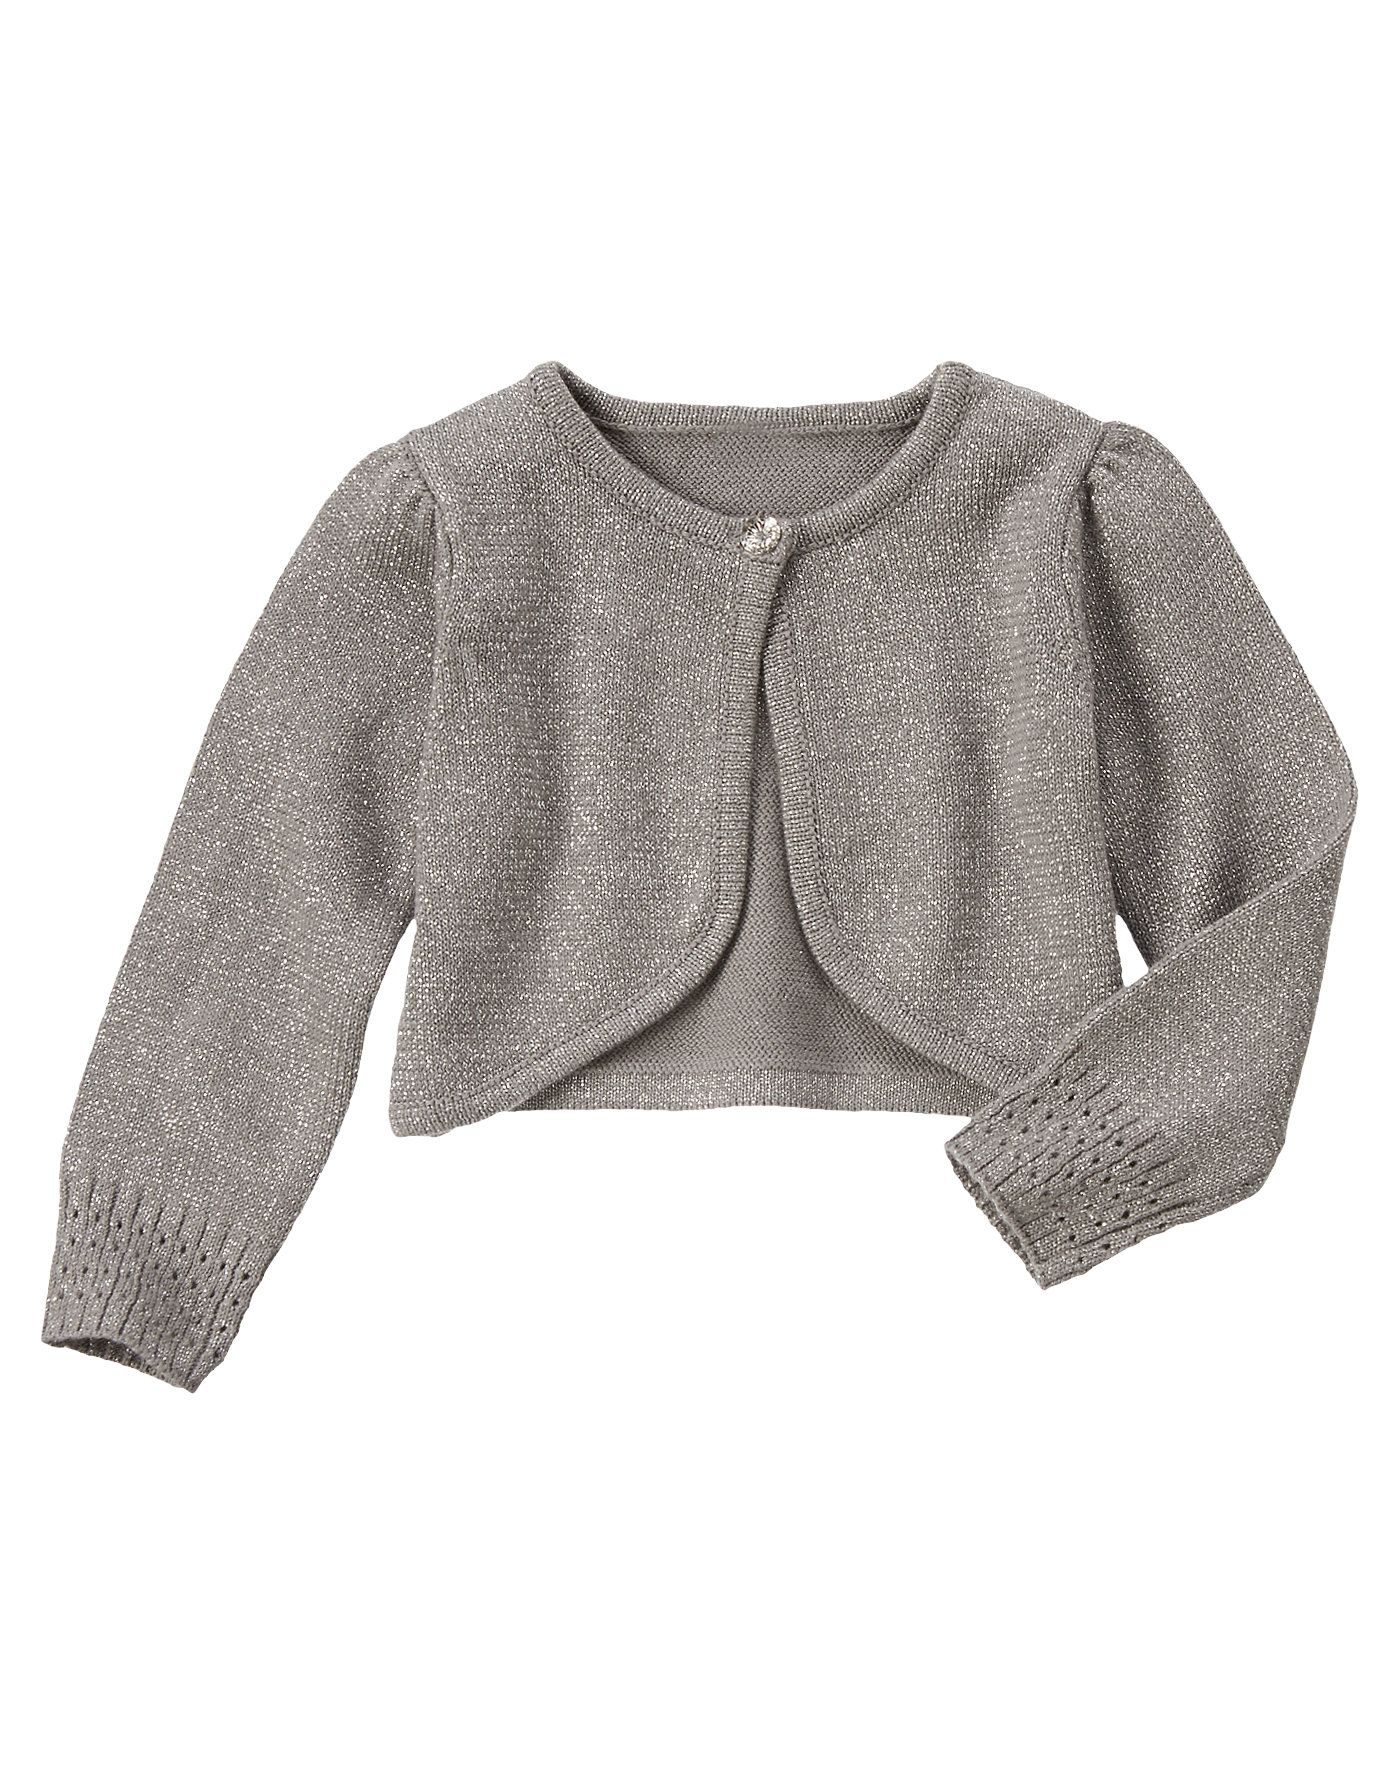 Sparkle Shrug Sweater at Gymboree #Holiday | Rosie Clothes ...